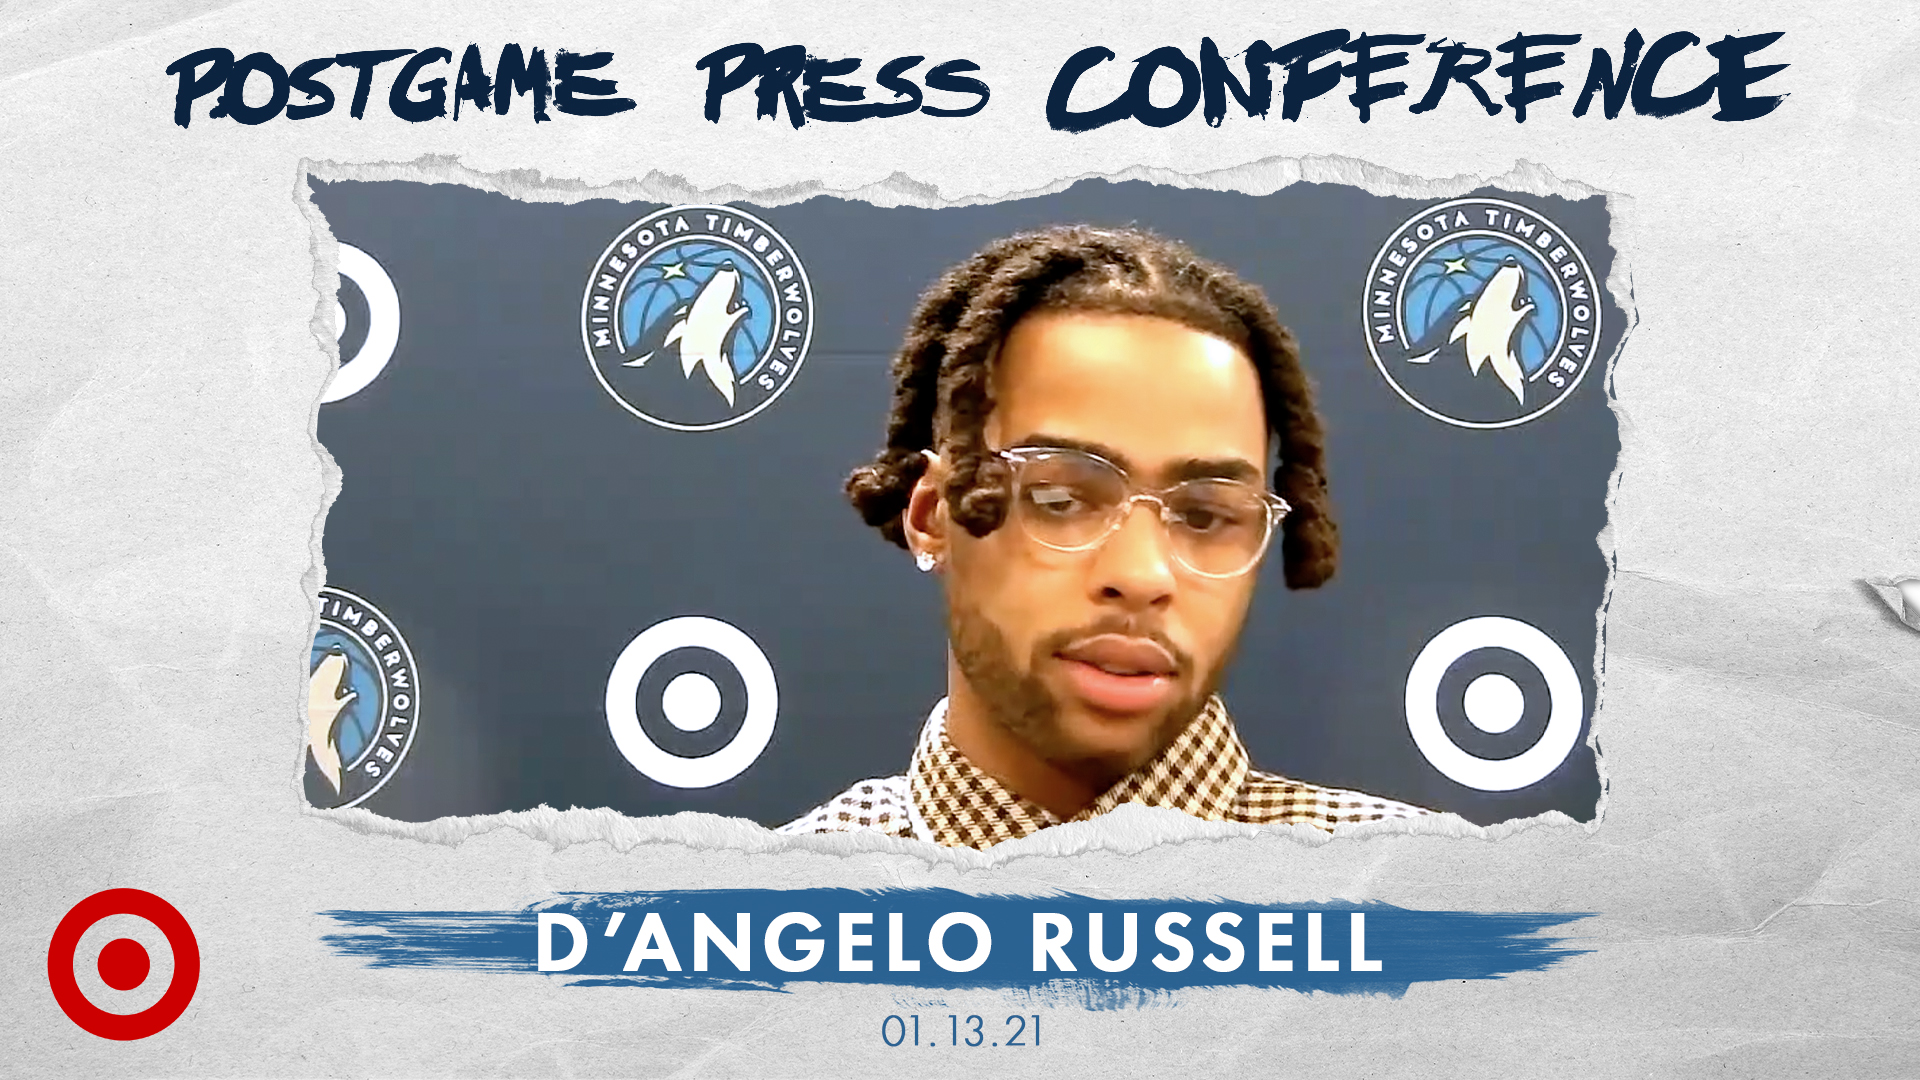 D'Angelo Russell Postgame Press Conference - January 13, 2021